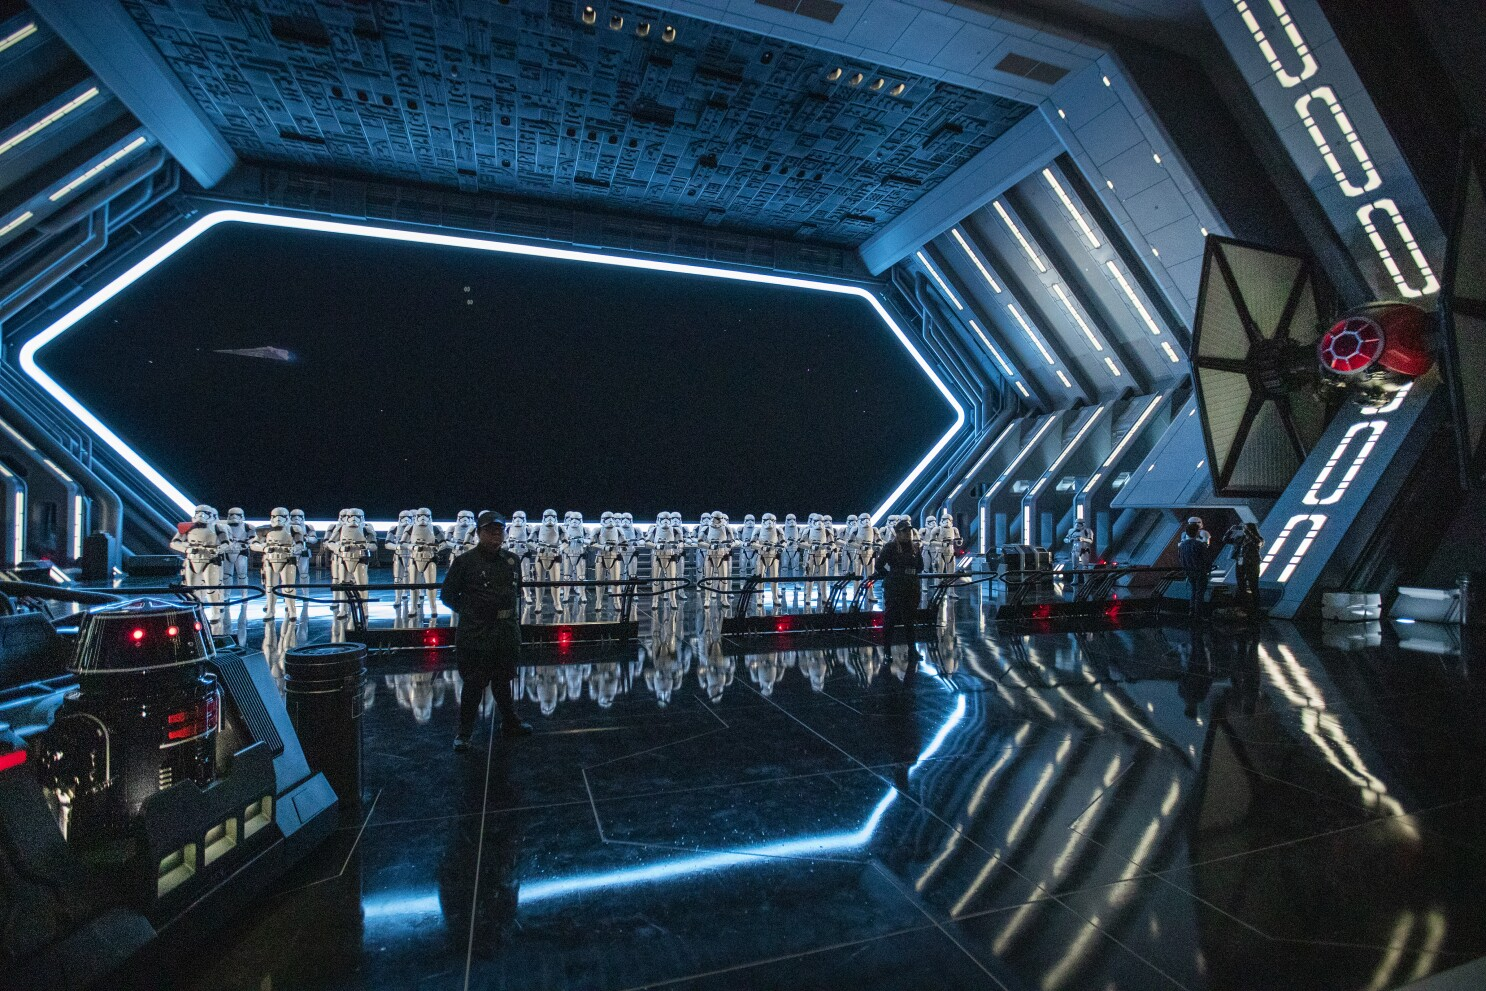 Disneyland S New Star Wars Rise Of The Resistance Ride To Open Los Angeles Times